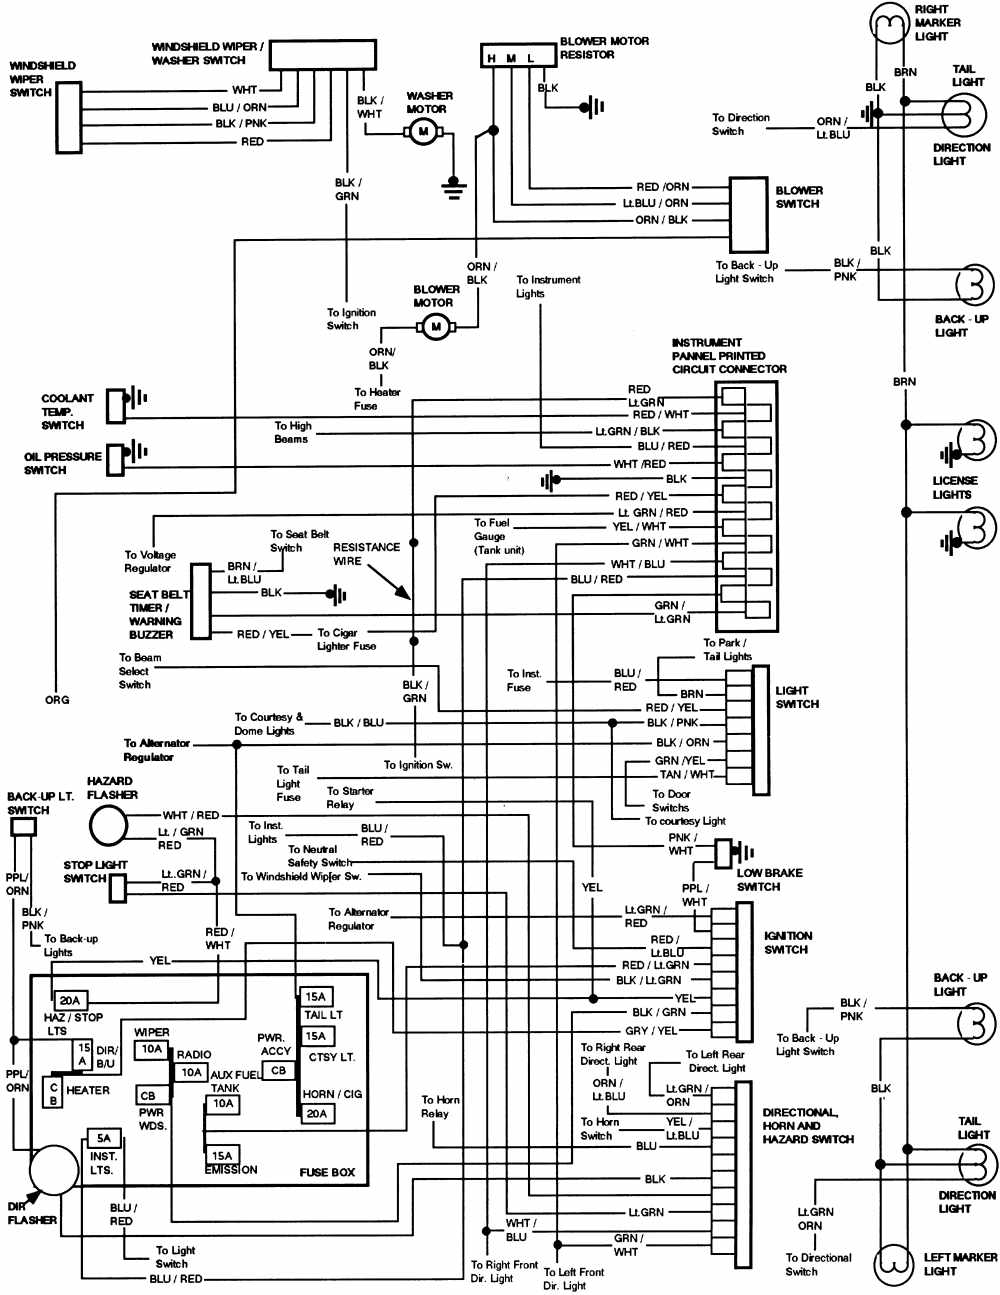 wiring diagram ford lobo 2009